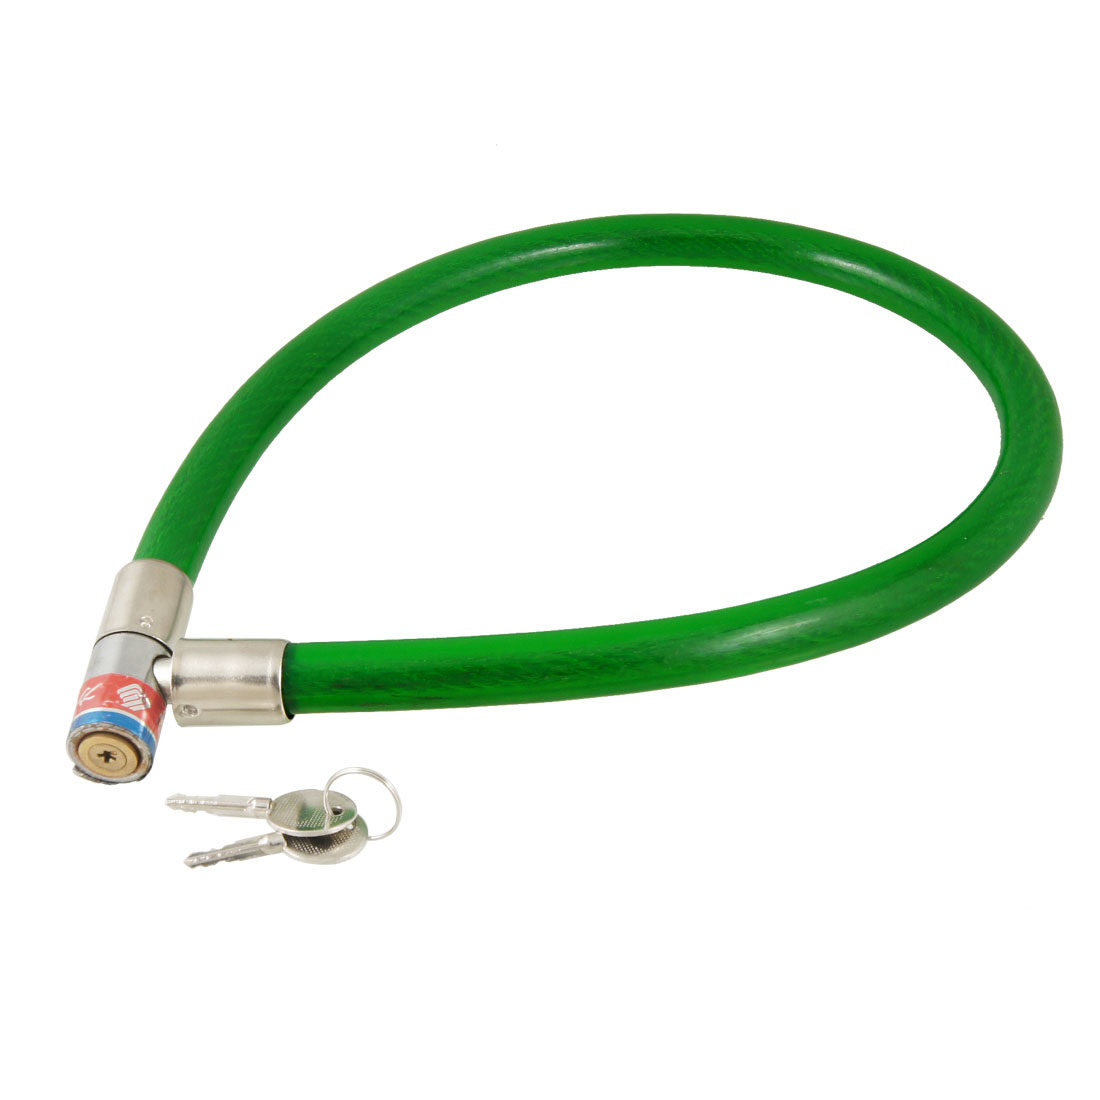 "24.4"" Green Flexible Cable Bike Bicycle Motorcycle Security Lock w Keys"